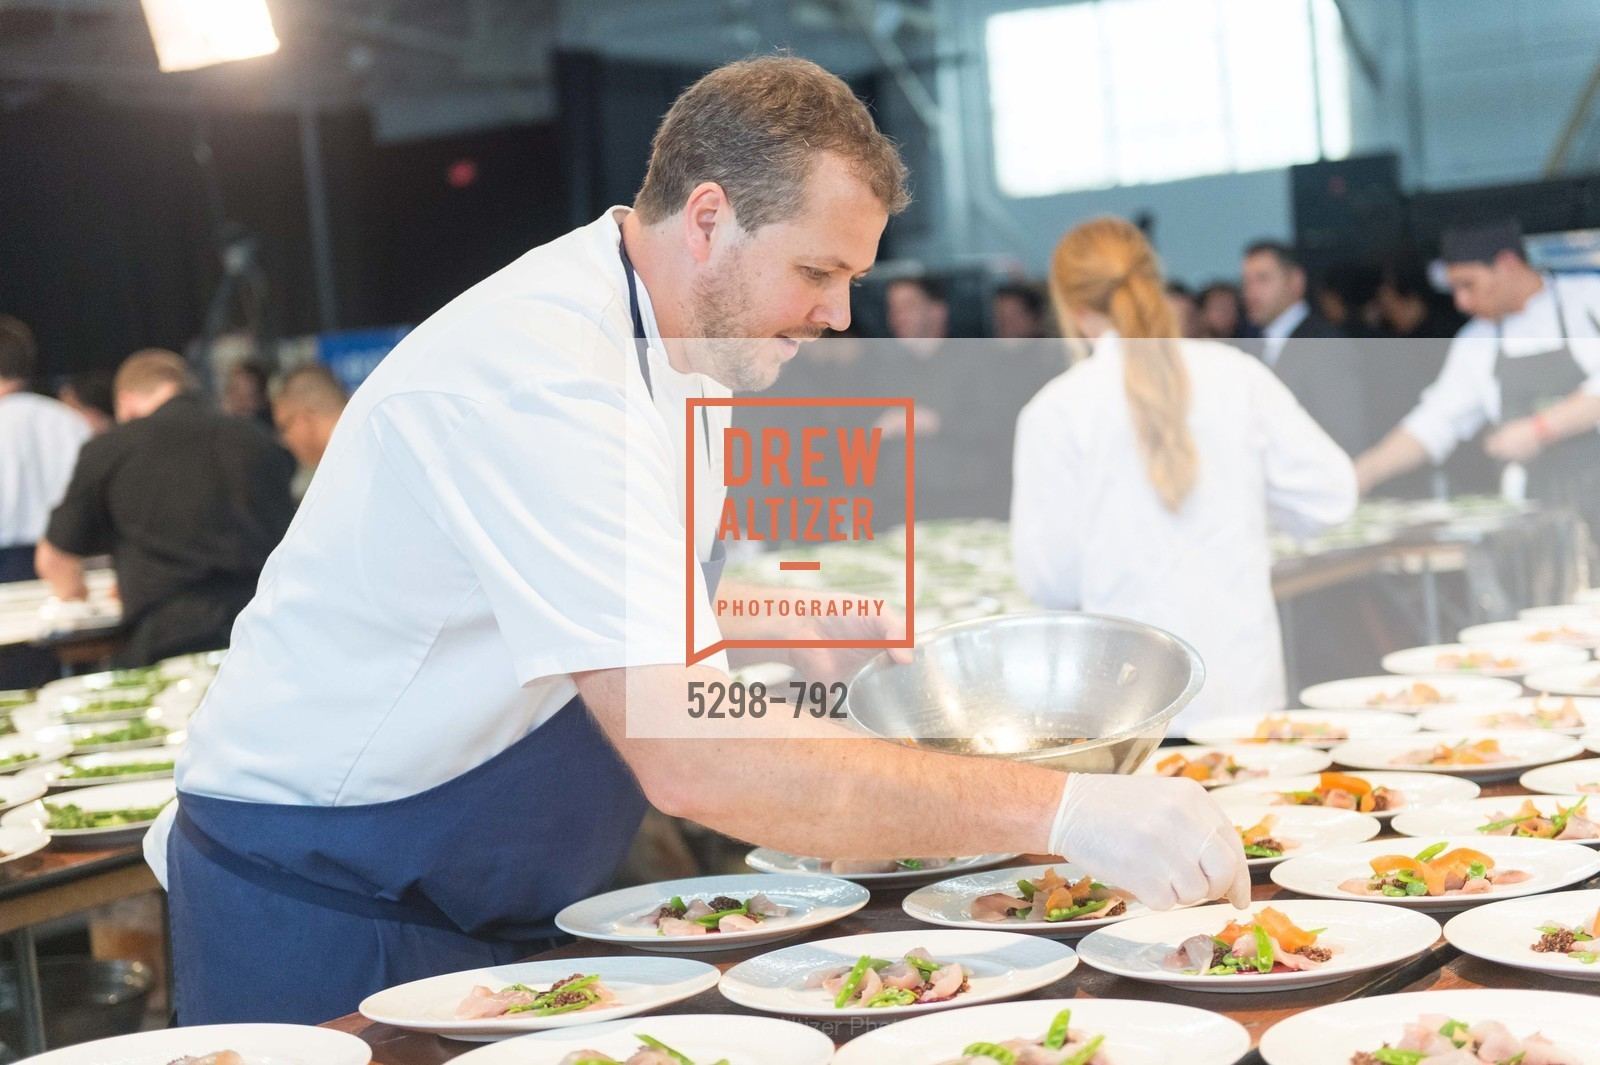 Extras, MEALS ON WHEELS OF SAN FRANCISCO'S 28th Annual Star Chefs and Vintners Gala, April 19th, 2015, Photo,Drew Altizer, Drew Altizer Photography, full-service agency, private events, San Francisco photographer, photographer california